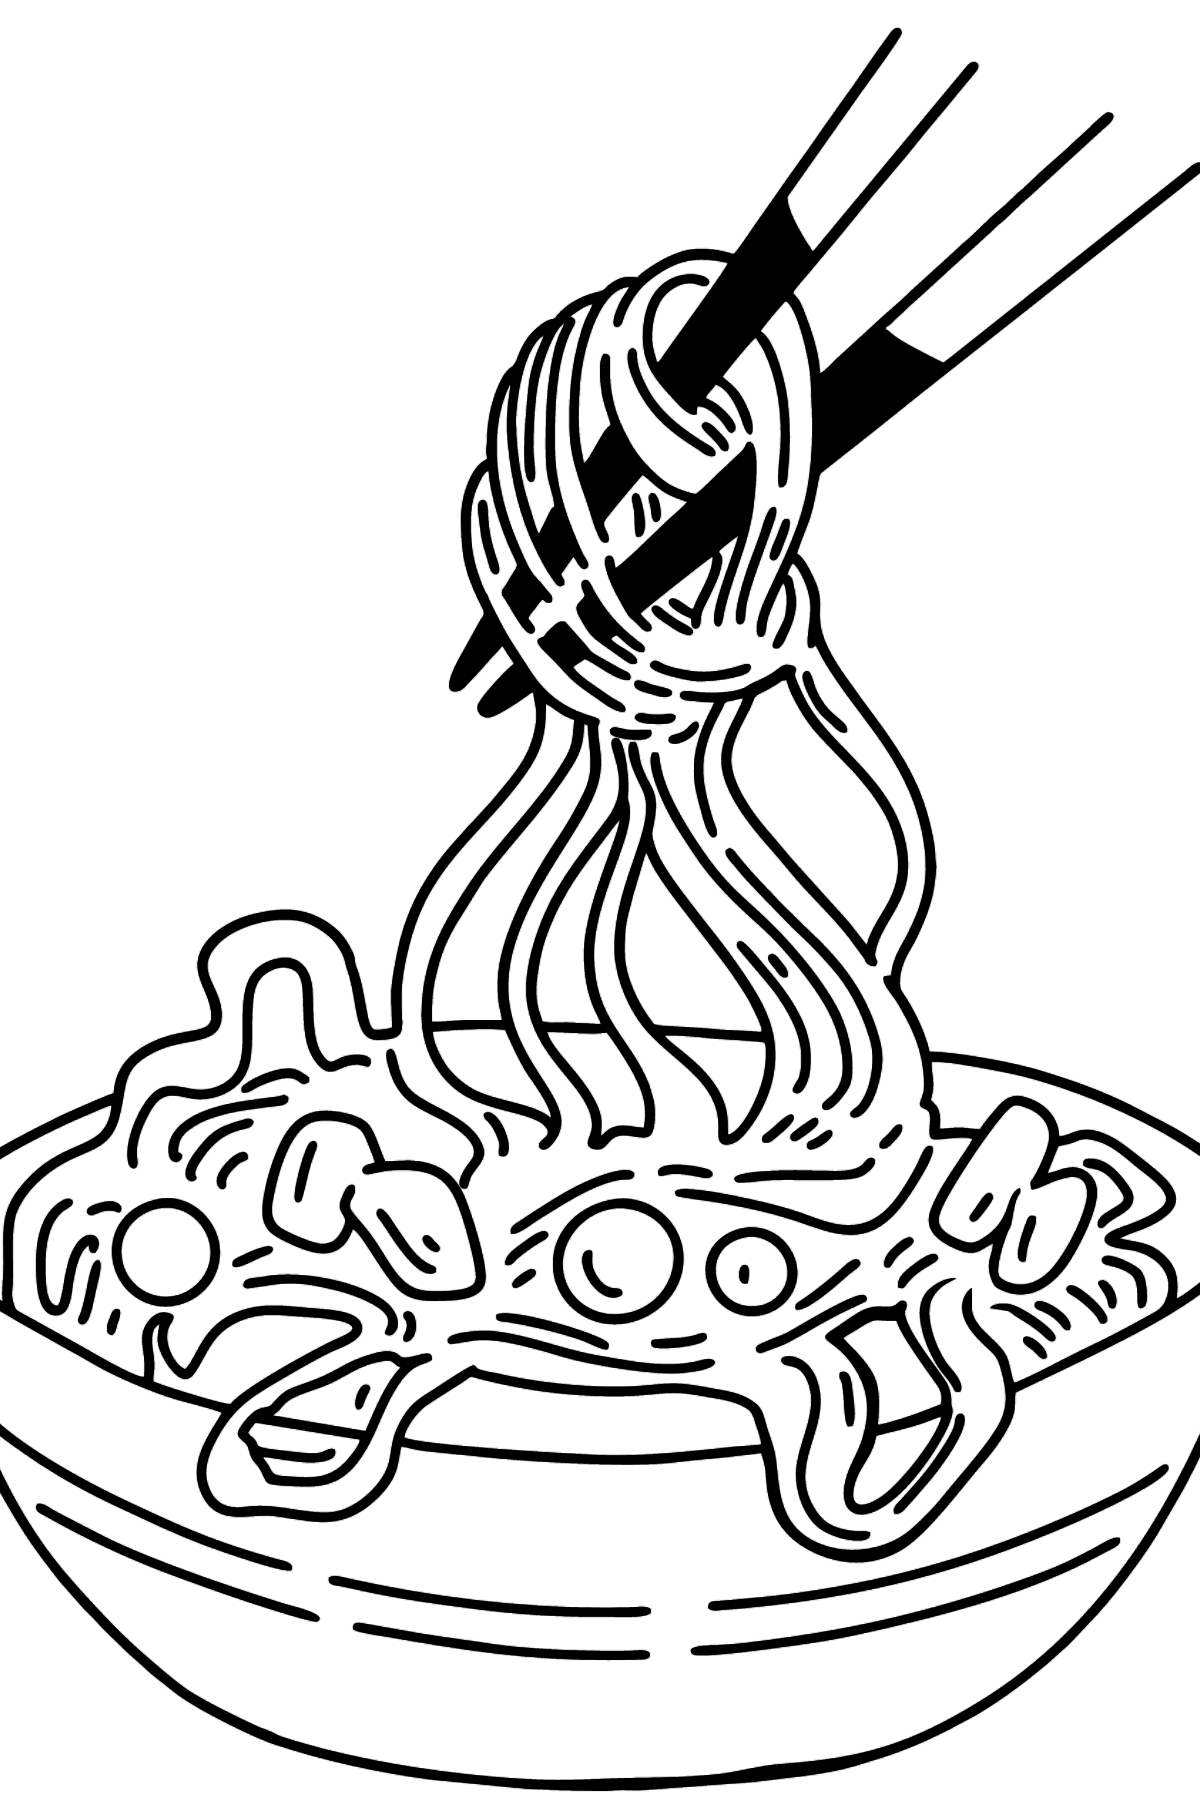 Ramen coloring page - Coloring Pages for Kids